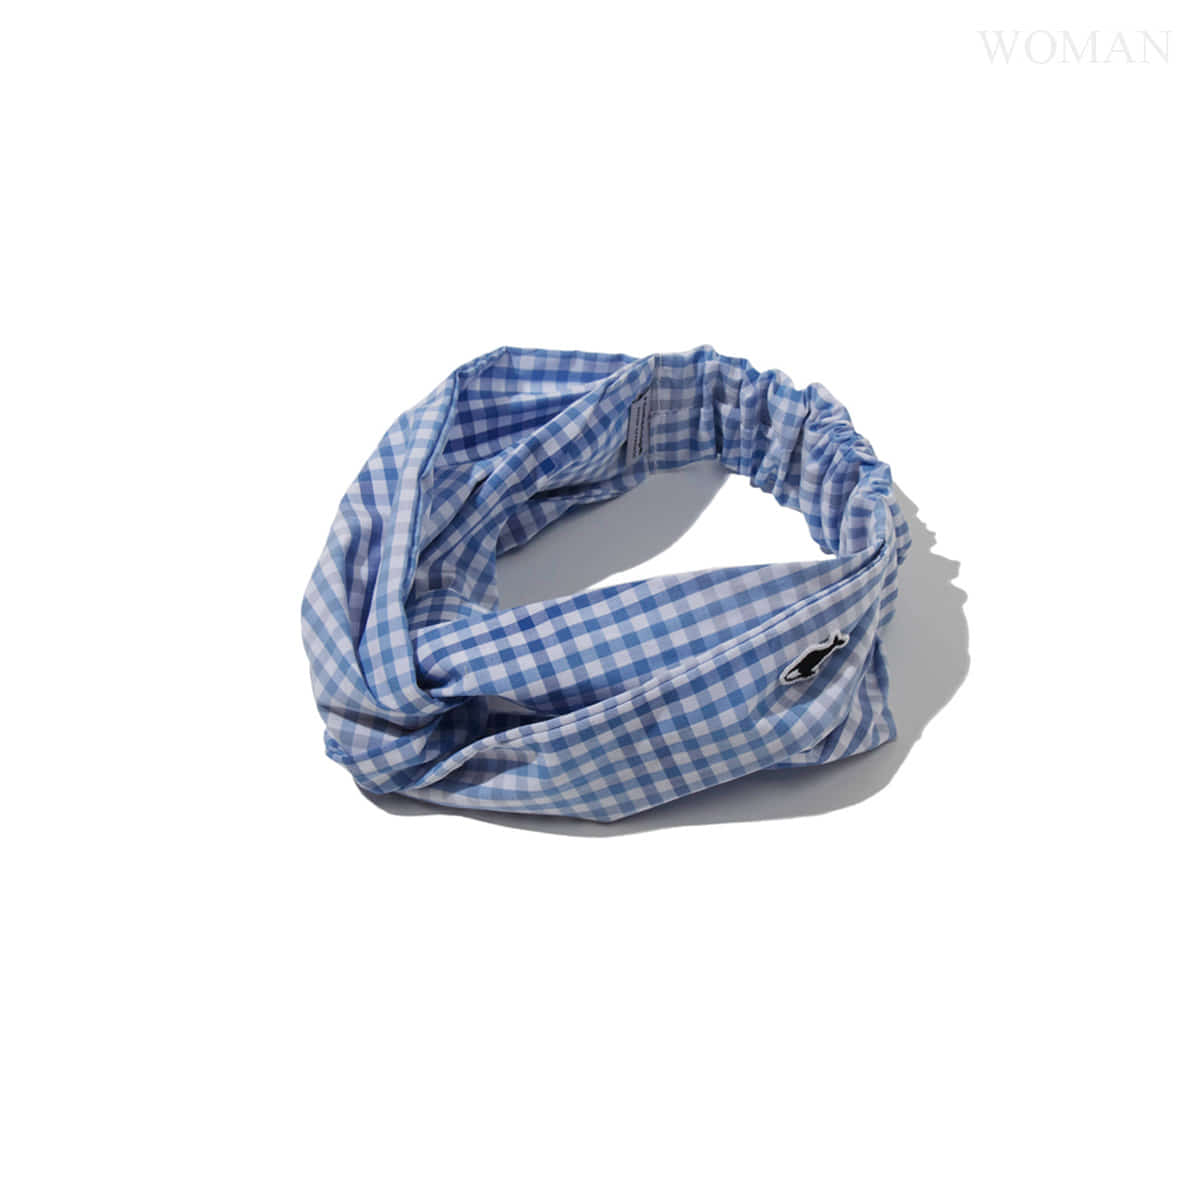 [NEITHERS] 404A-1 HAIR BAND 'BLUE/WHITE'